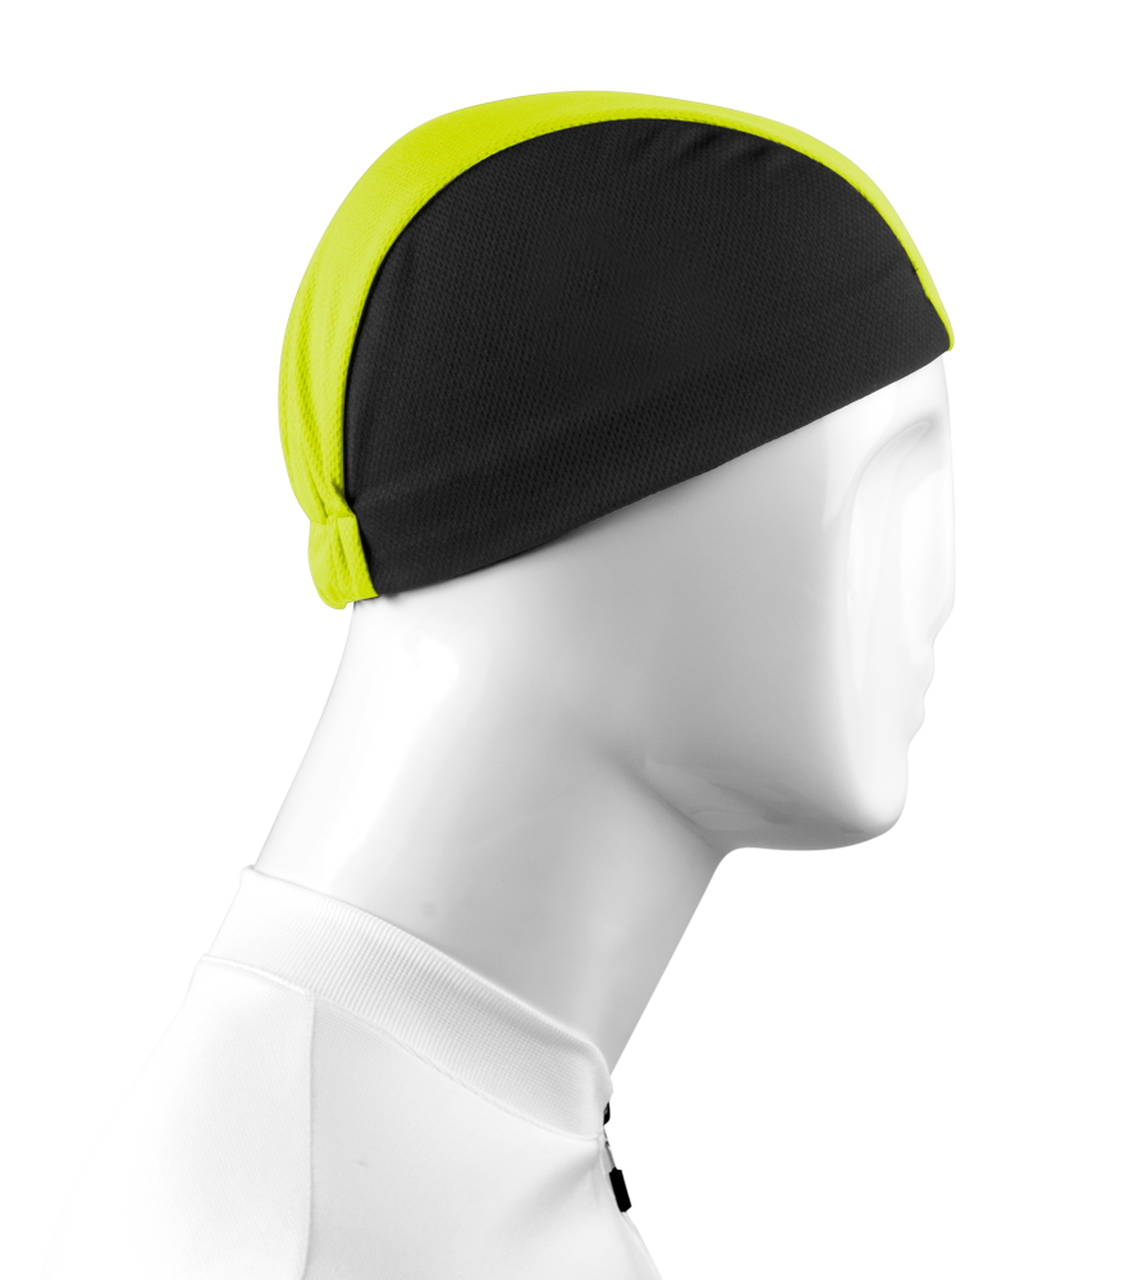 Cycling Apparel for Sun Protection